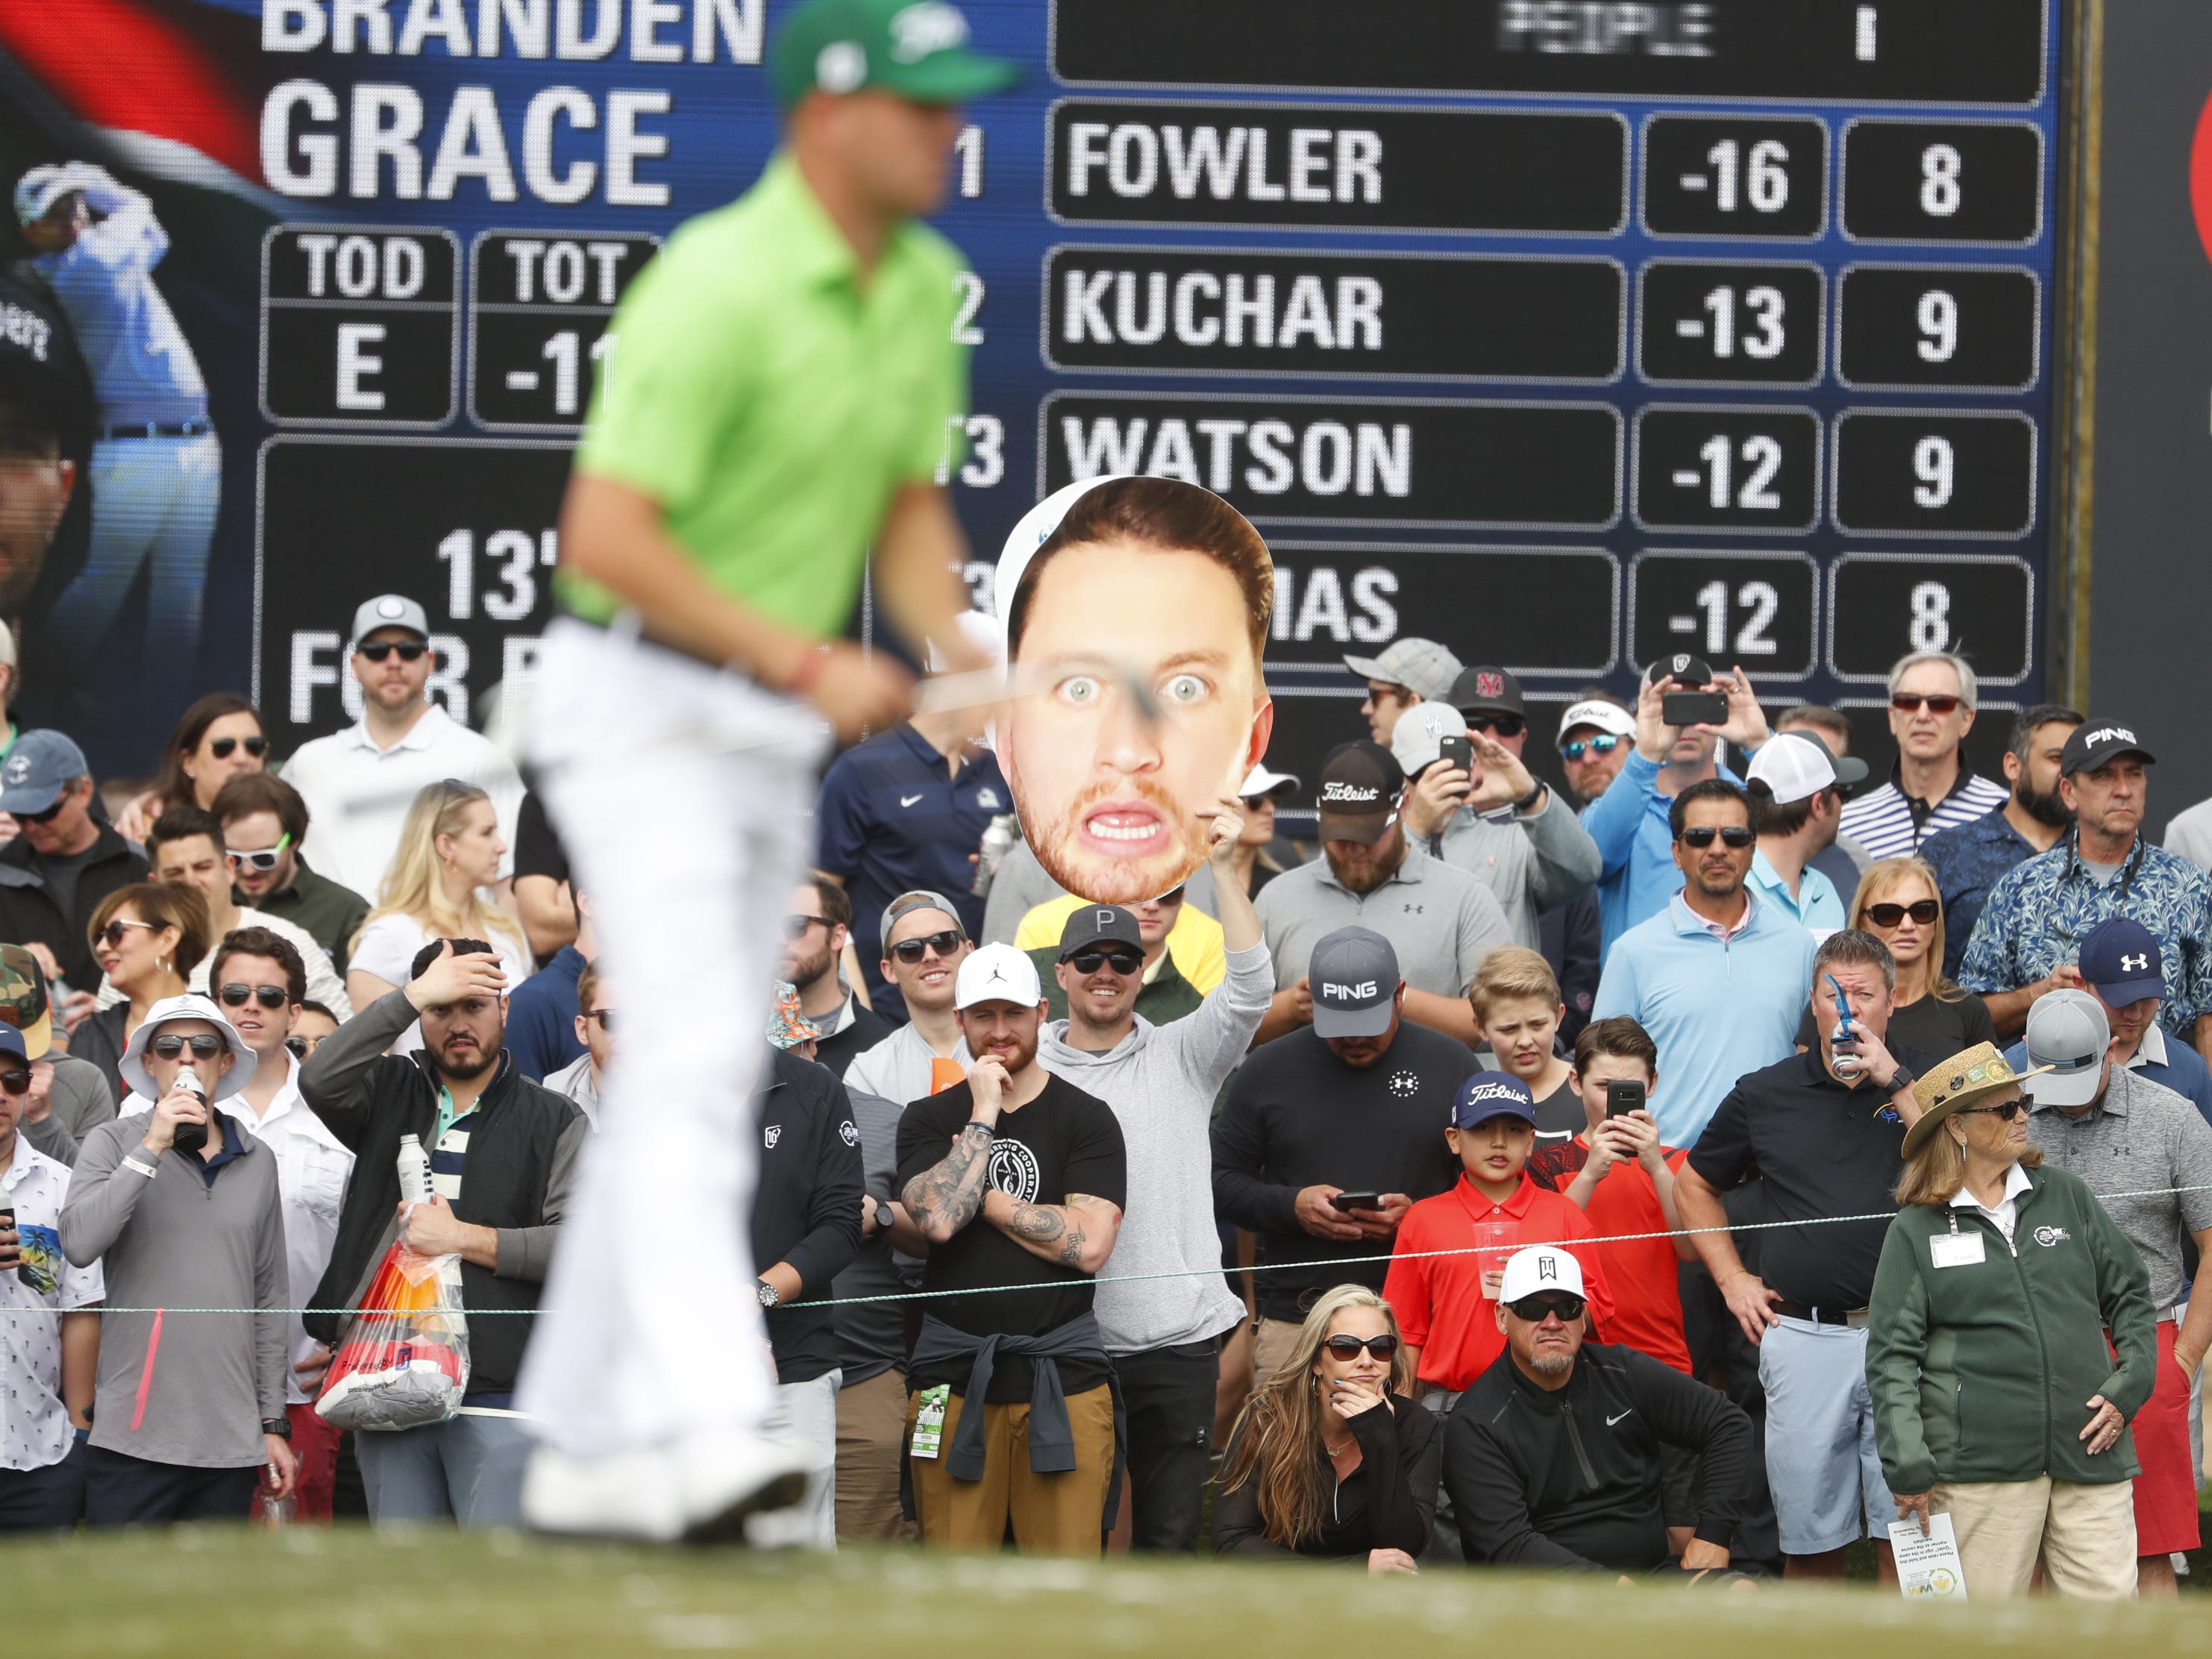 A Branden Grace cutout head sits near the 9th green during the third round of the Waste Management Phoenix Open at TPC Scottsdale in Scottsdale, Ariz. on February 2, 2019.